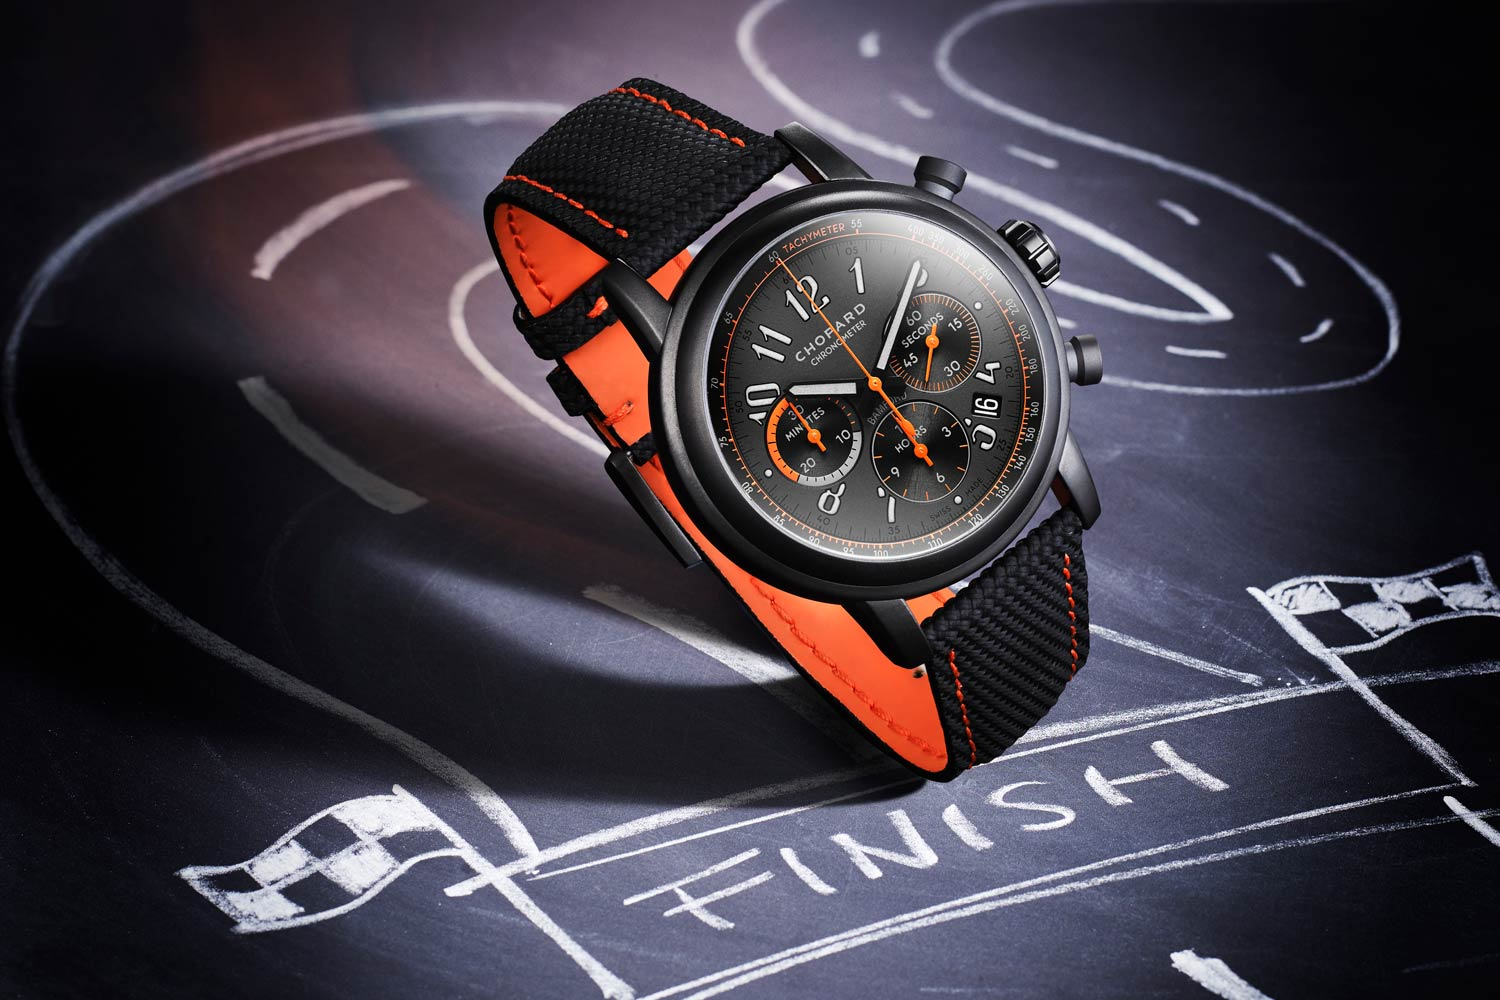 The new Chopard Mille Miglia Bamford Edition